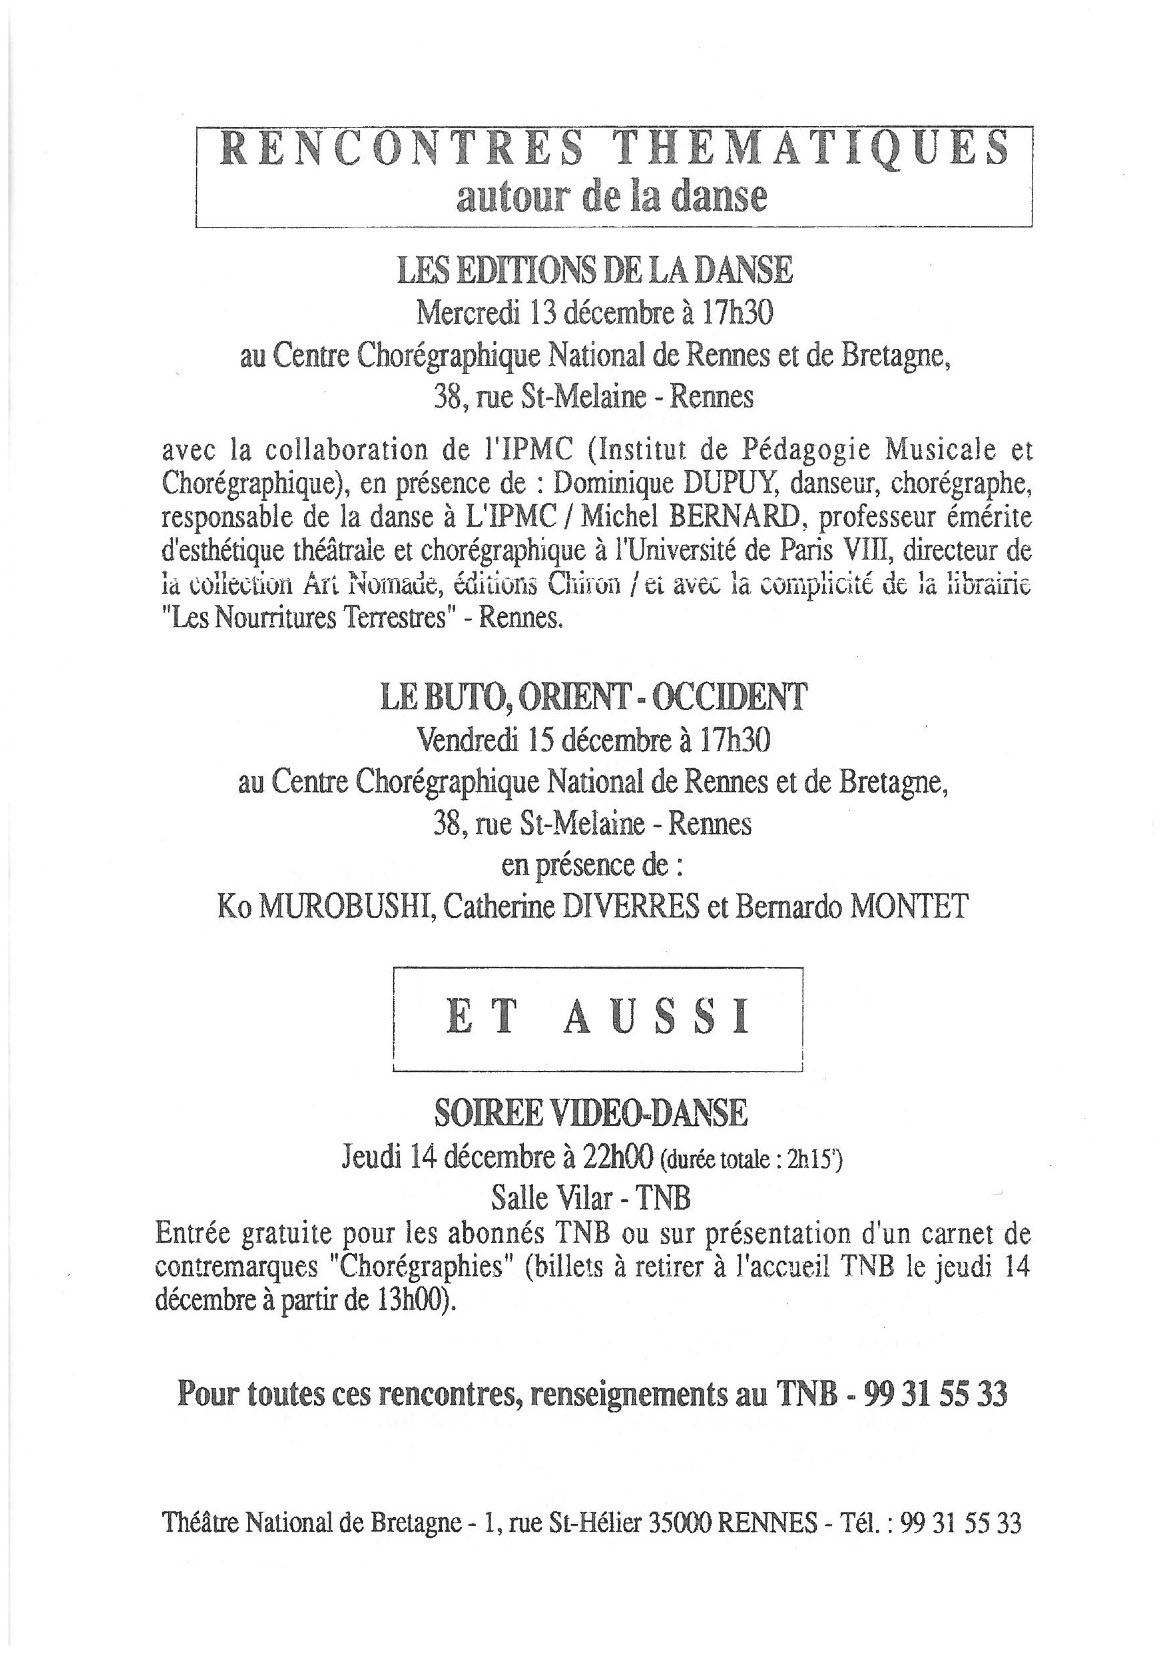 Recontres Thematiques Le Buto, Orient–Occident